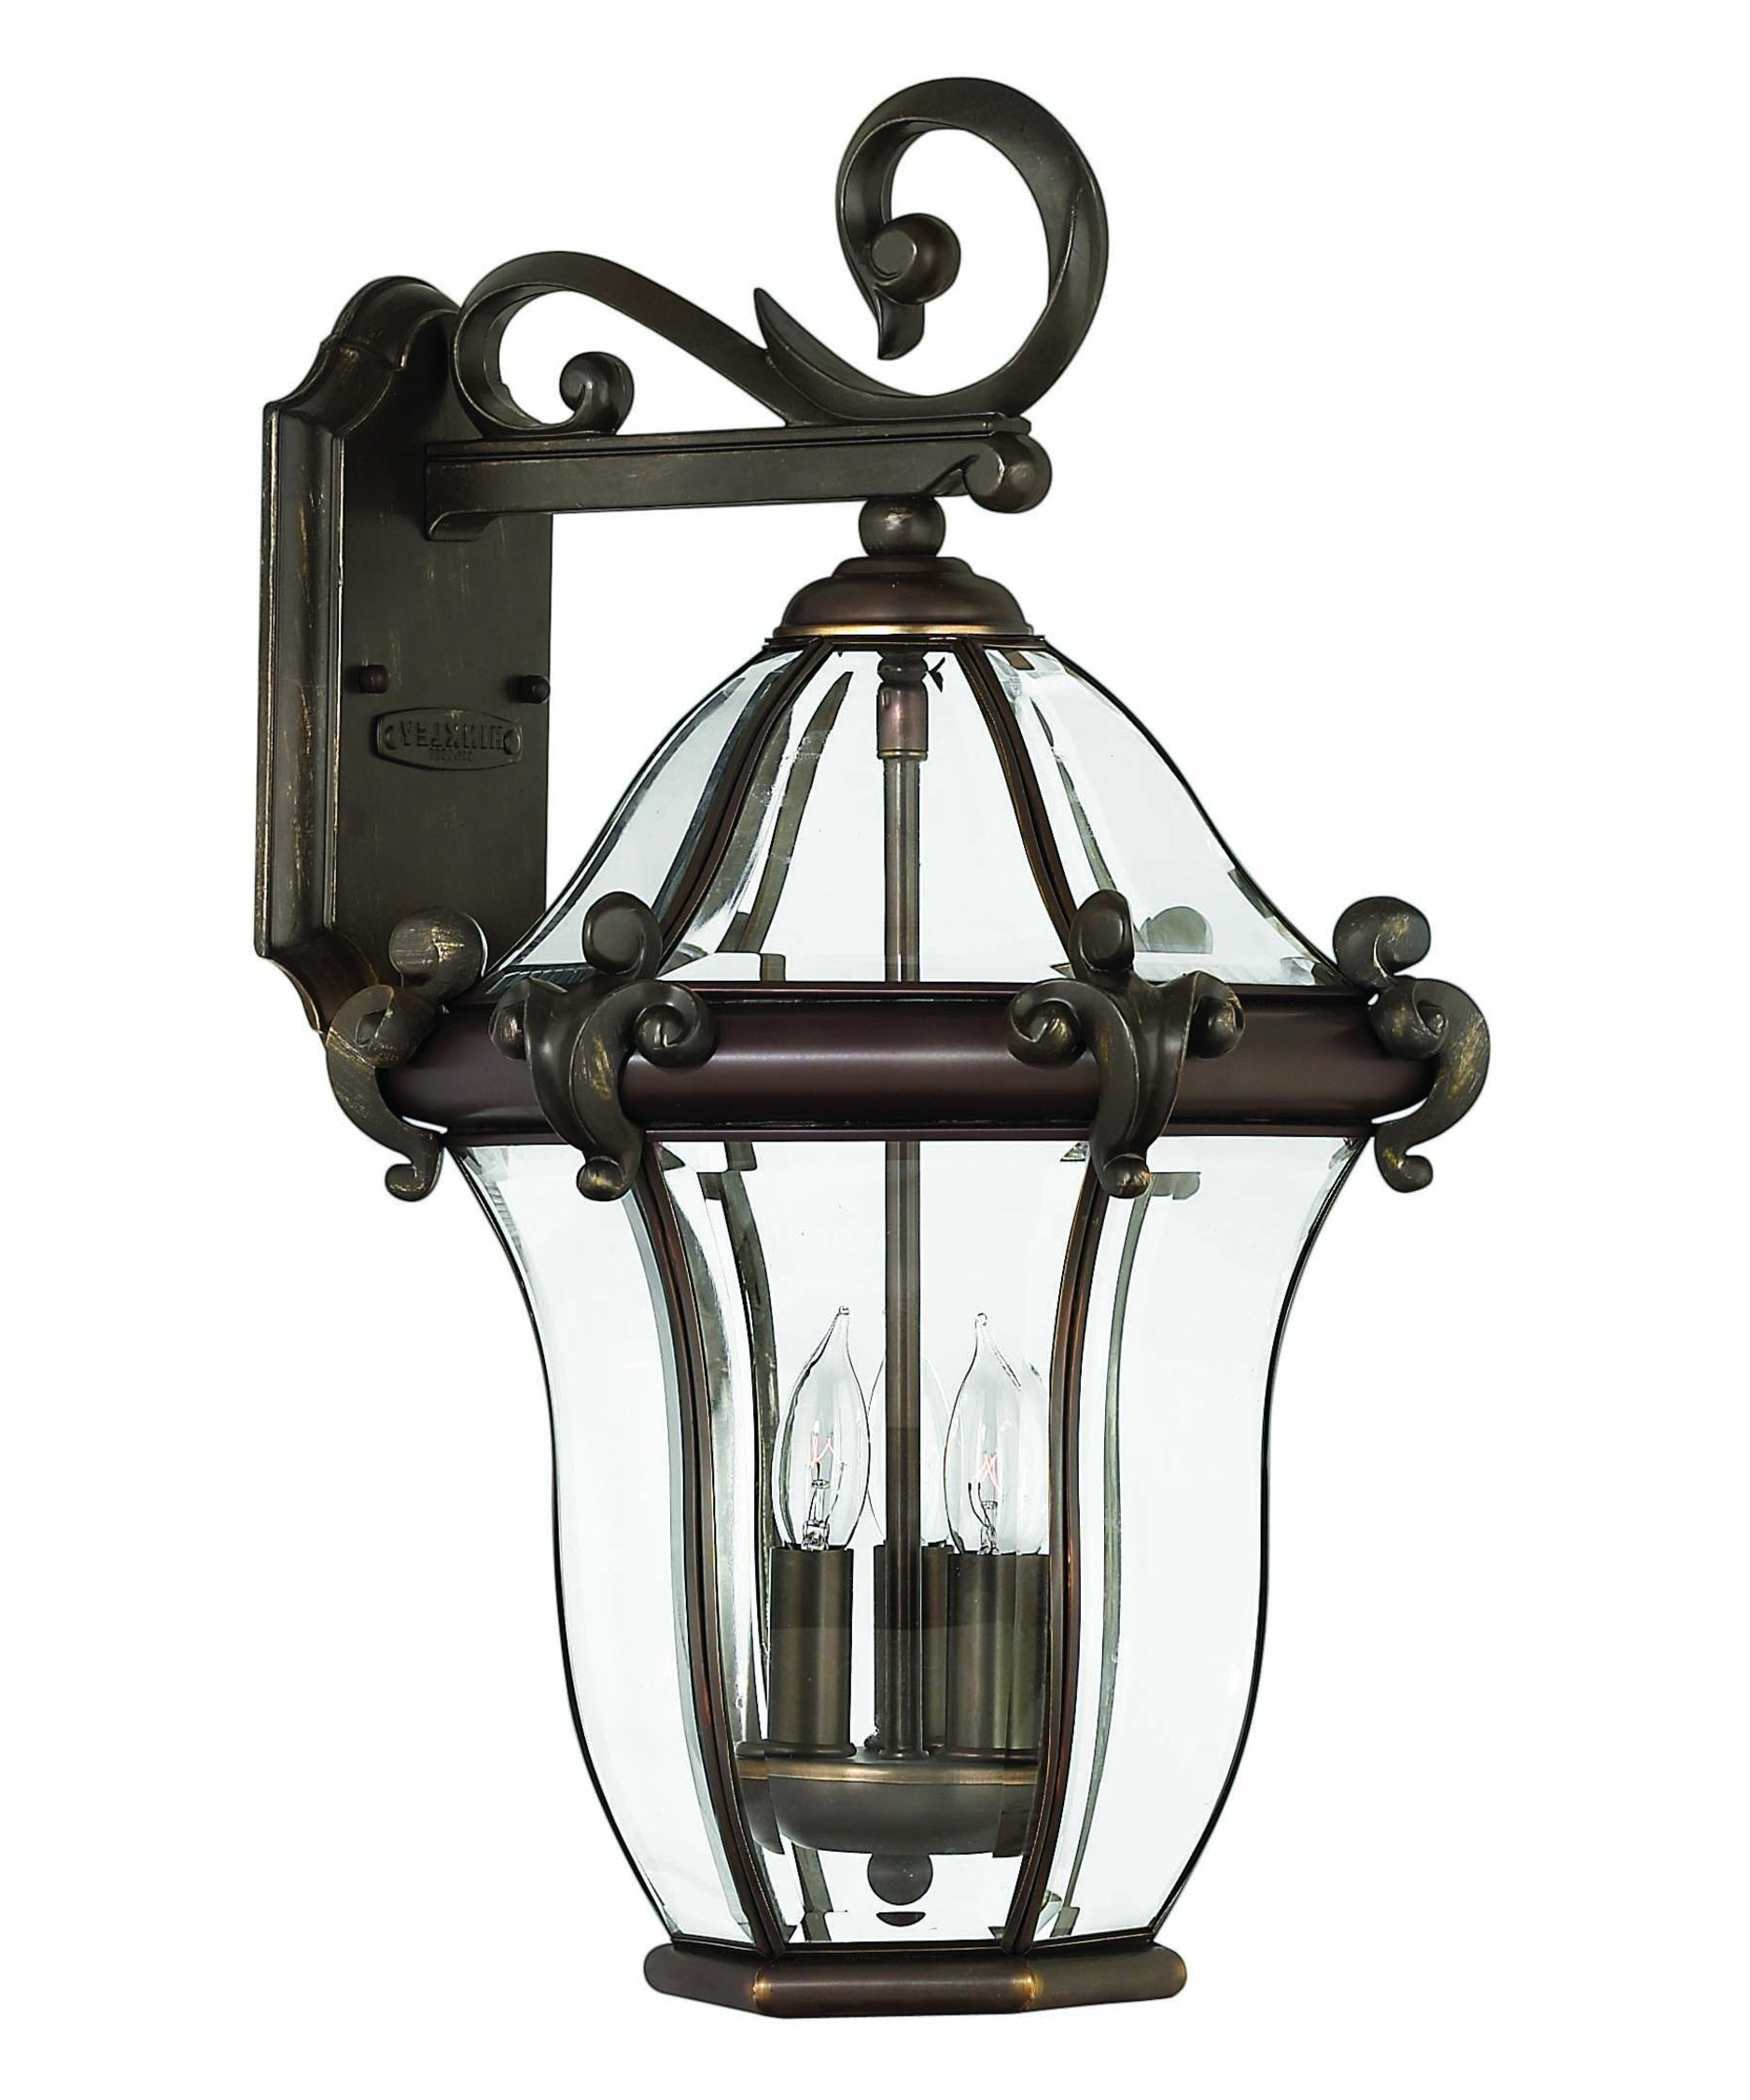 Hinkley Lighting 2444 San Clemente 12 Inch Wide 3 Light Outdoor Wall Throughout Most Recent Outdoor Wall Light Glass (View 4 of 20)